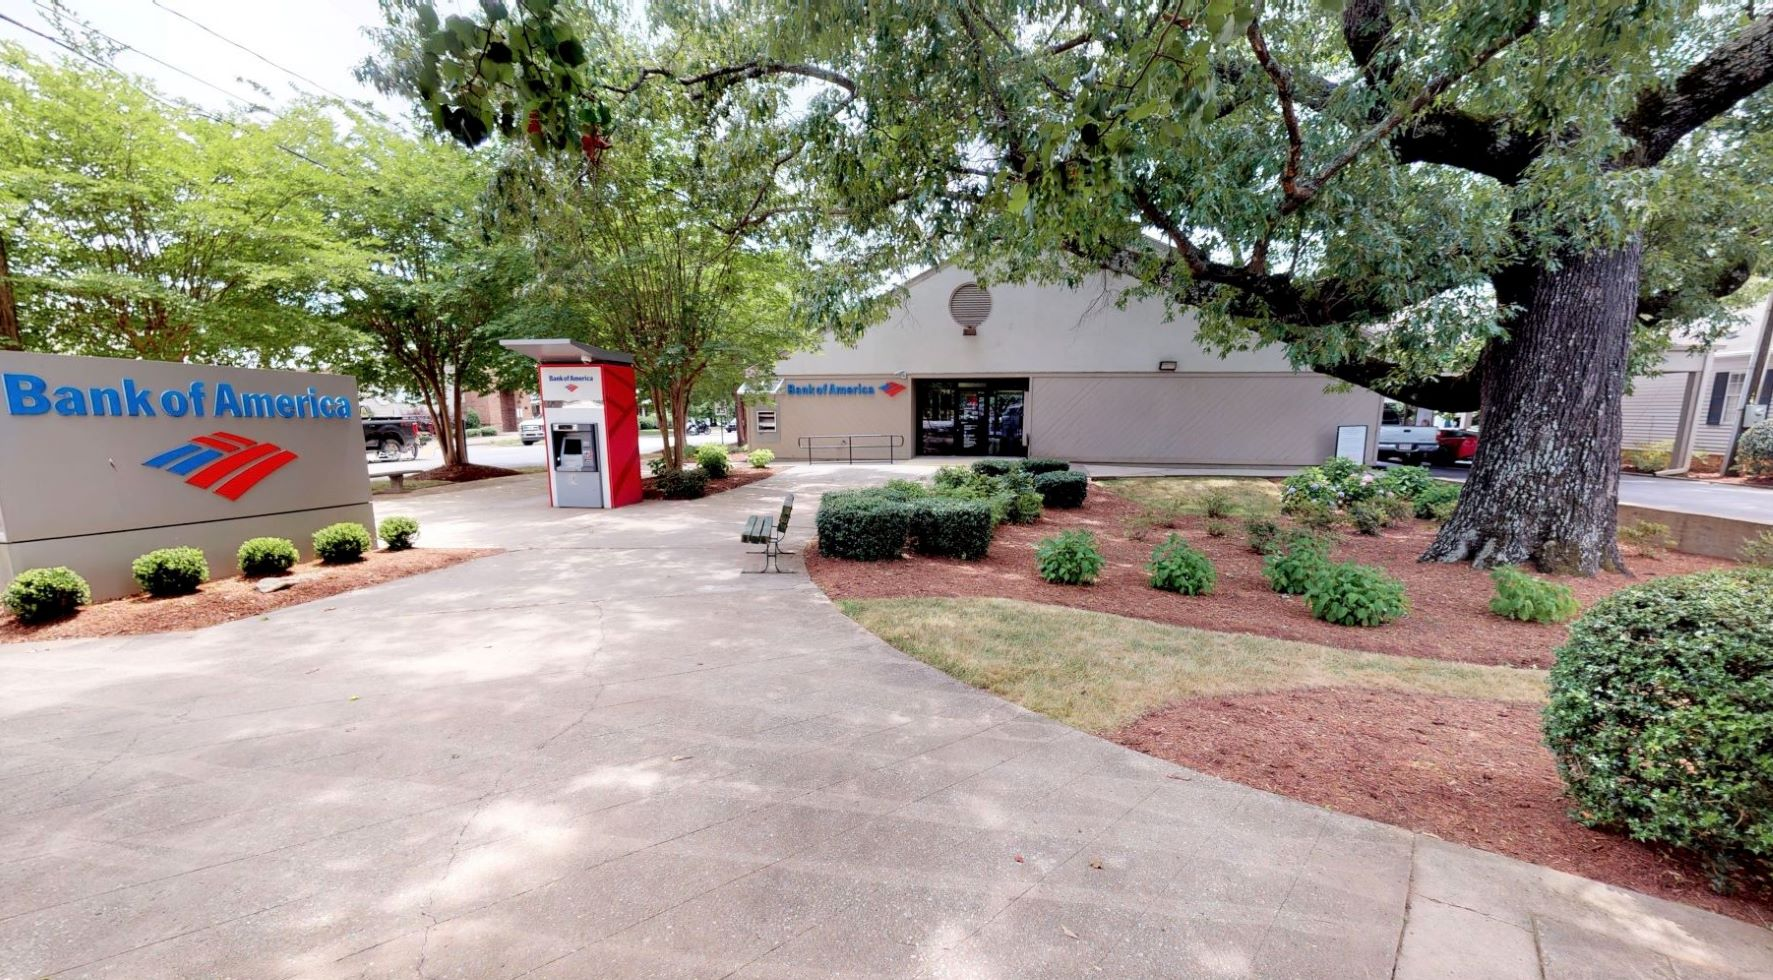 Bank of America financial center with walk-up ATM | 170 E Mills St, Columbus, NC 28722